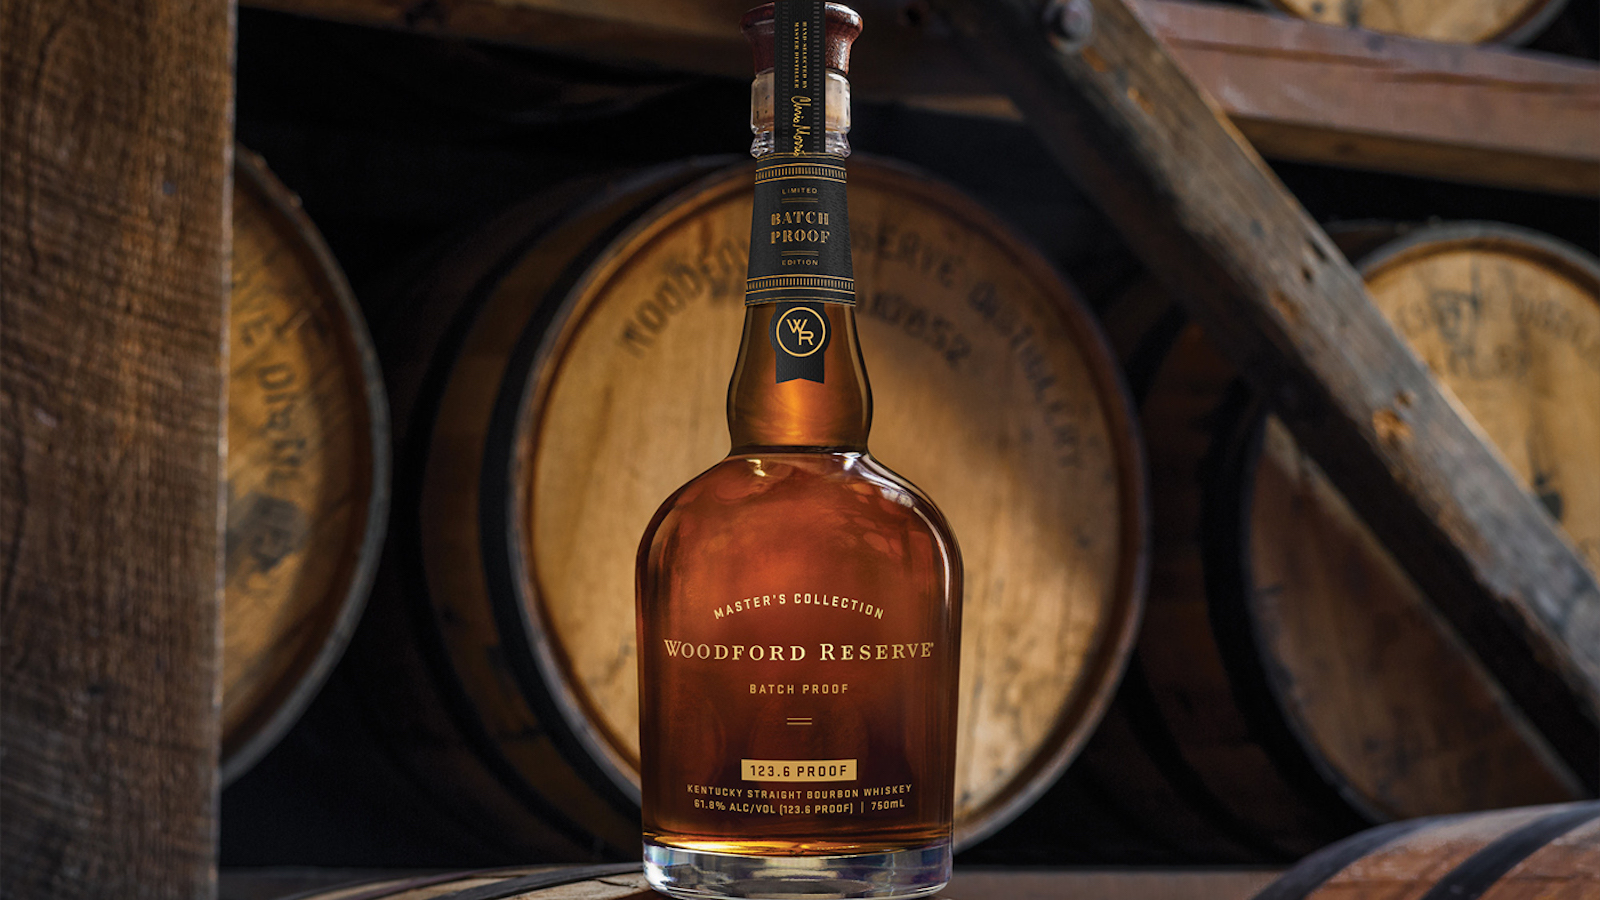 Woodford Reserve Batch Proof 2020, 1975 Glenfiddich & More New Whisky